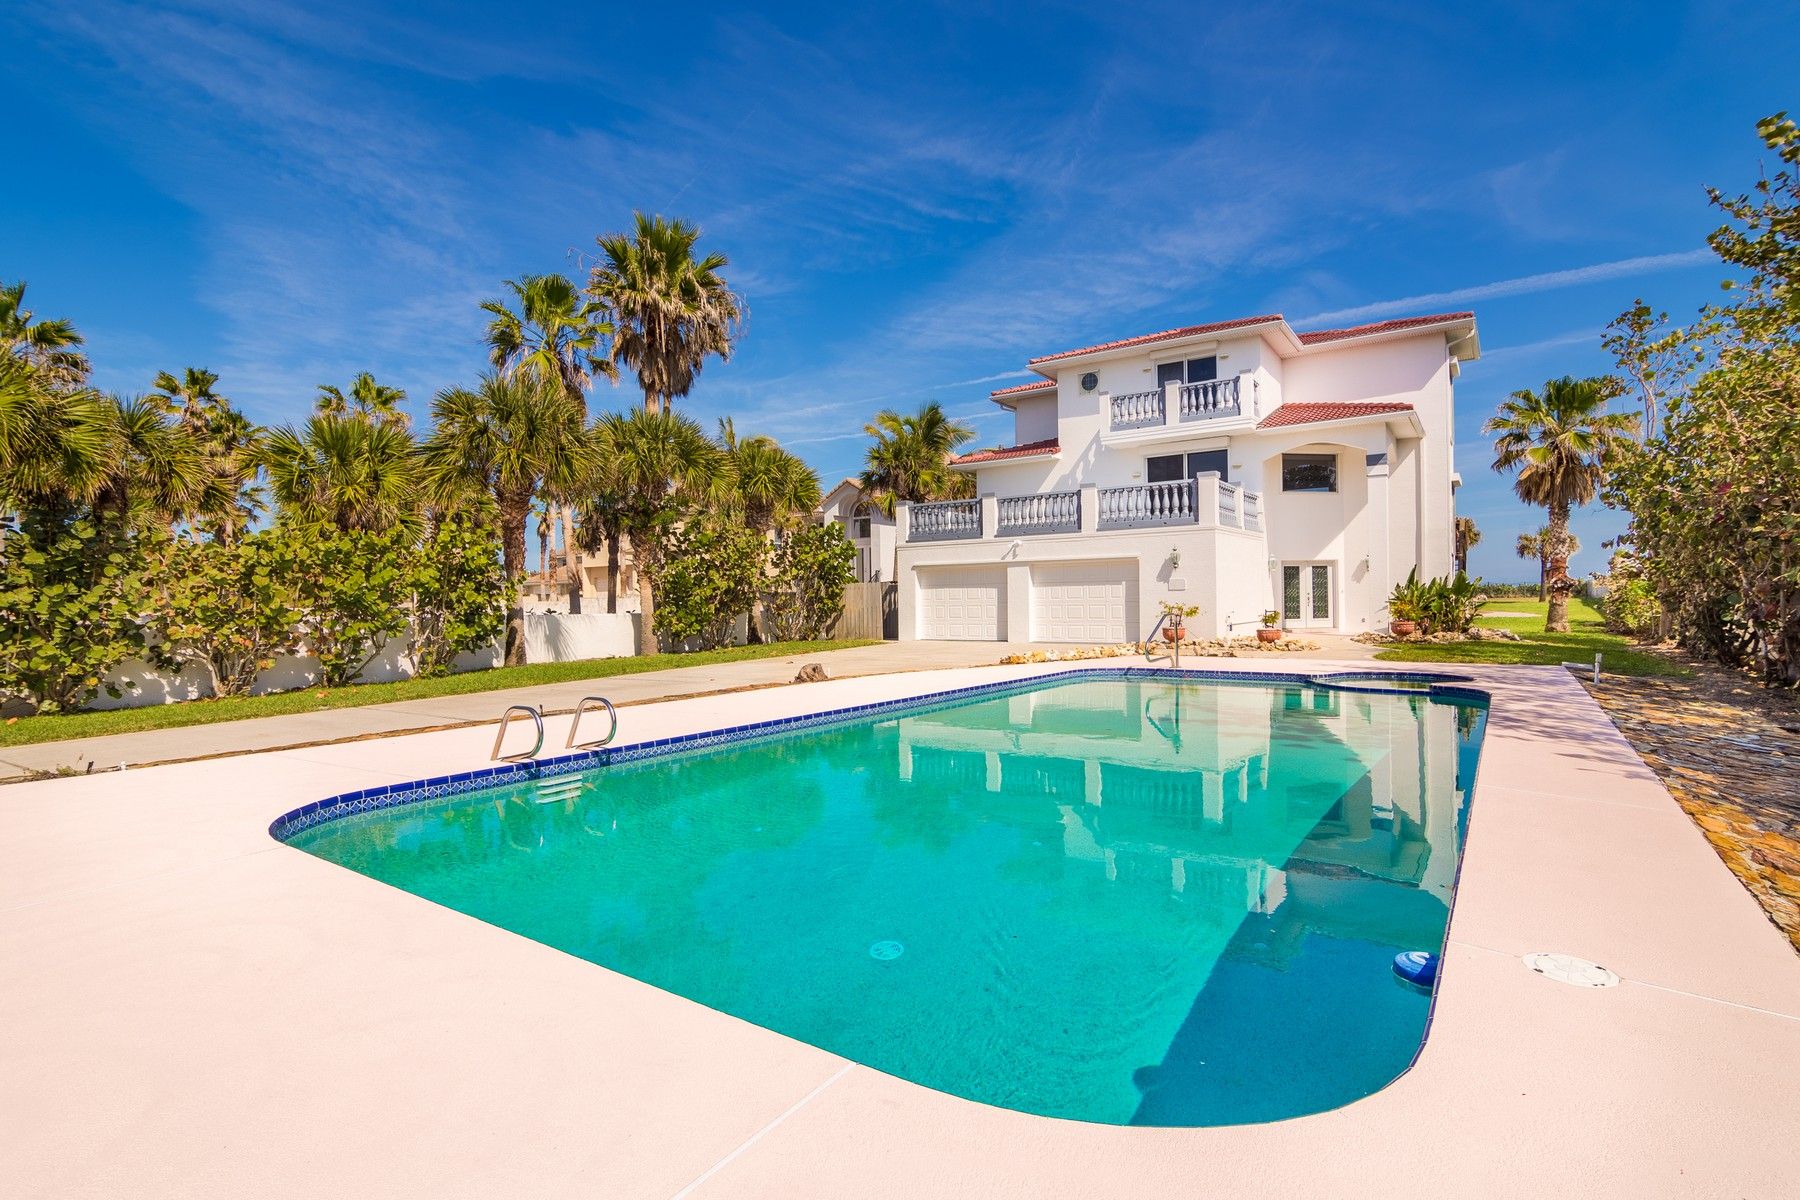 Single Family Home for Sale at Melbourne Shores 6005 Highway A1A, Melbourne Beach, Florida 32951 United States